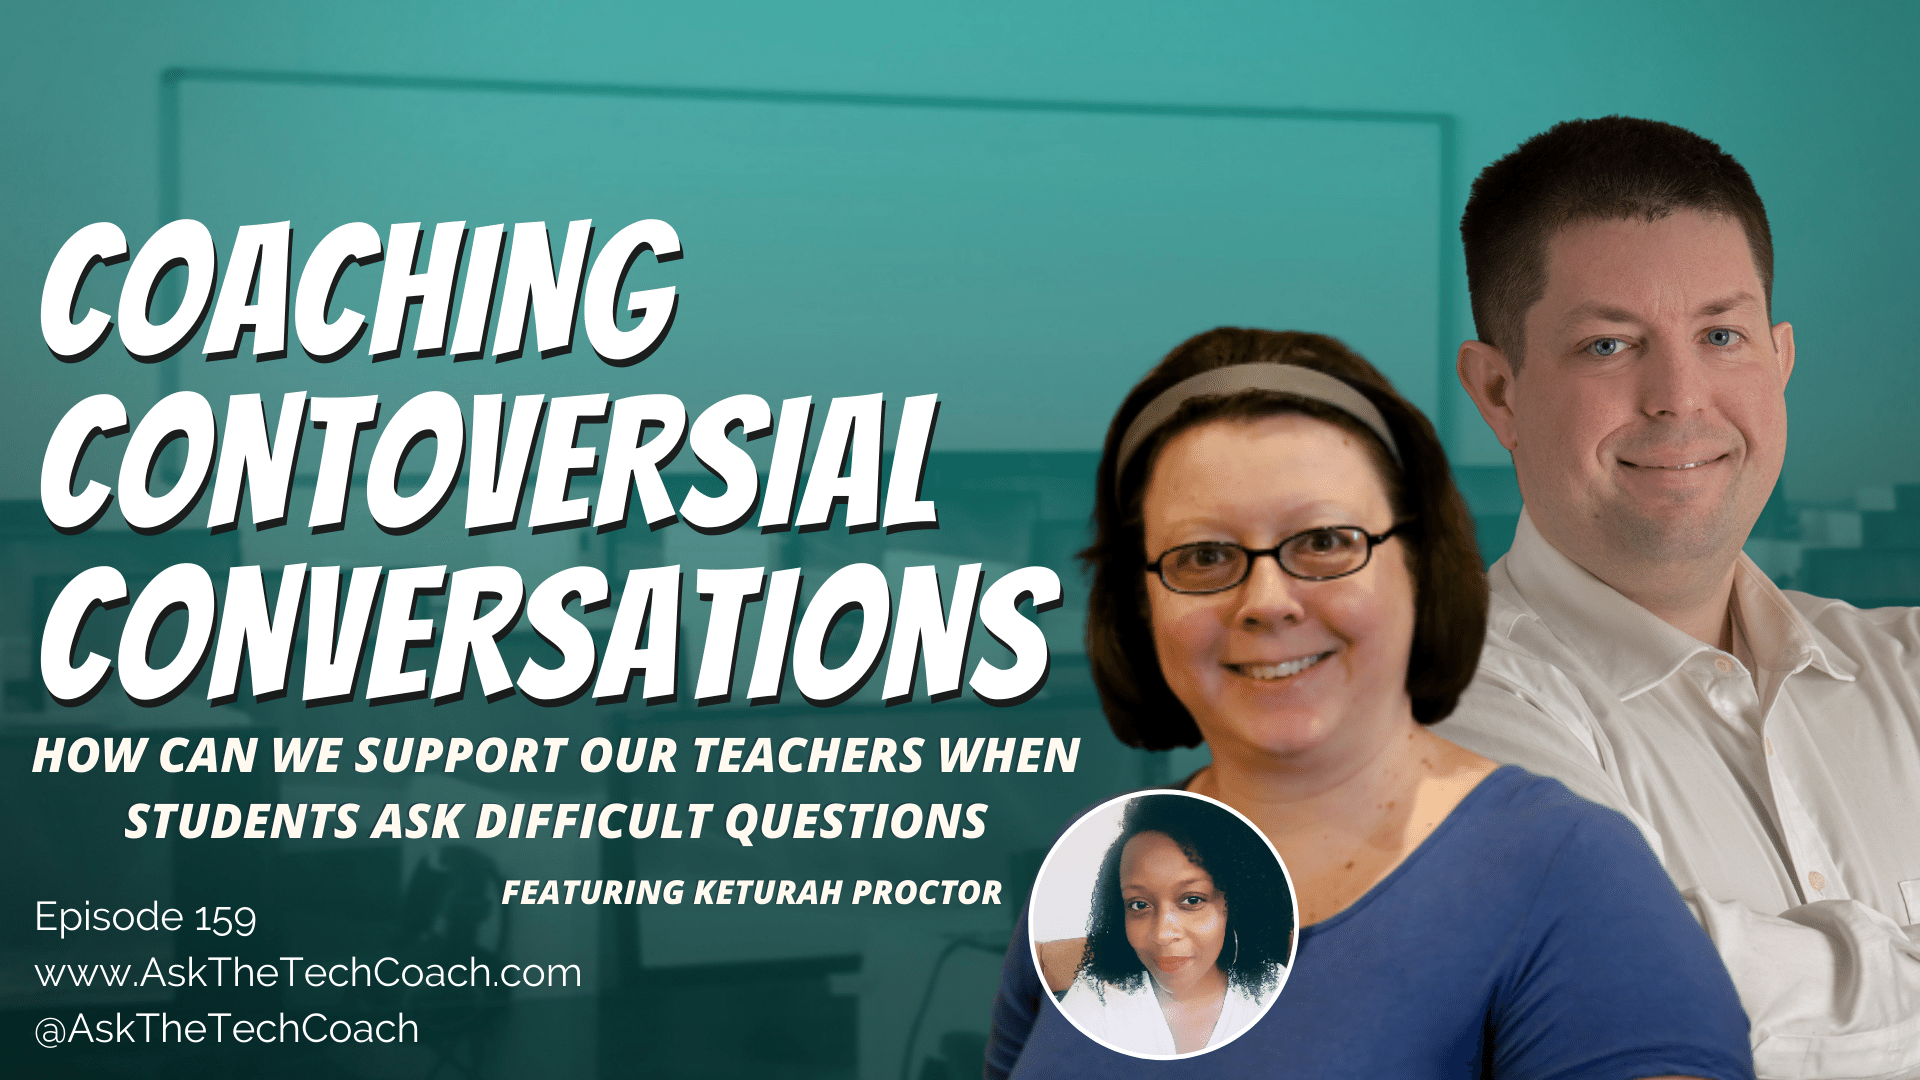 Coaching Controversial Conversations